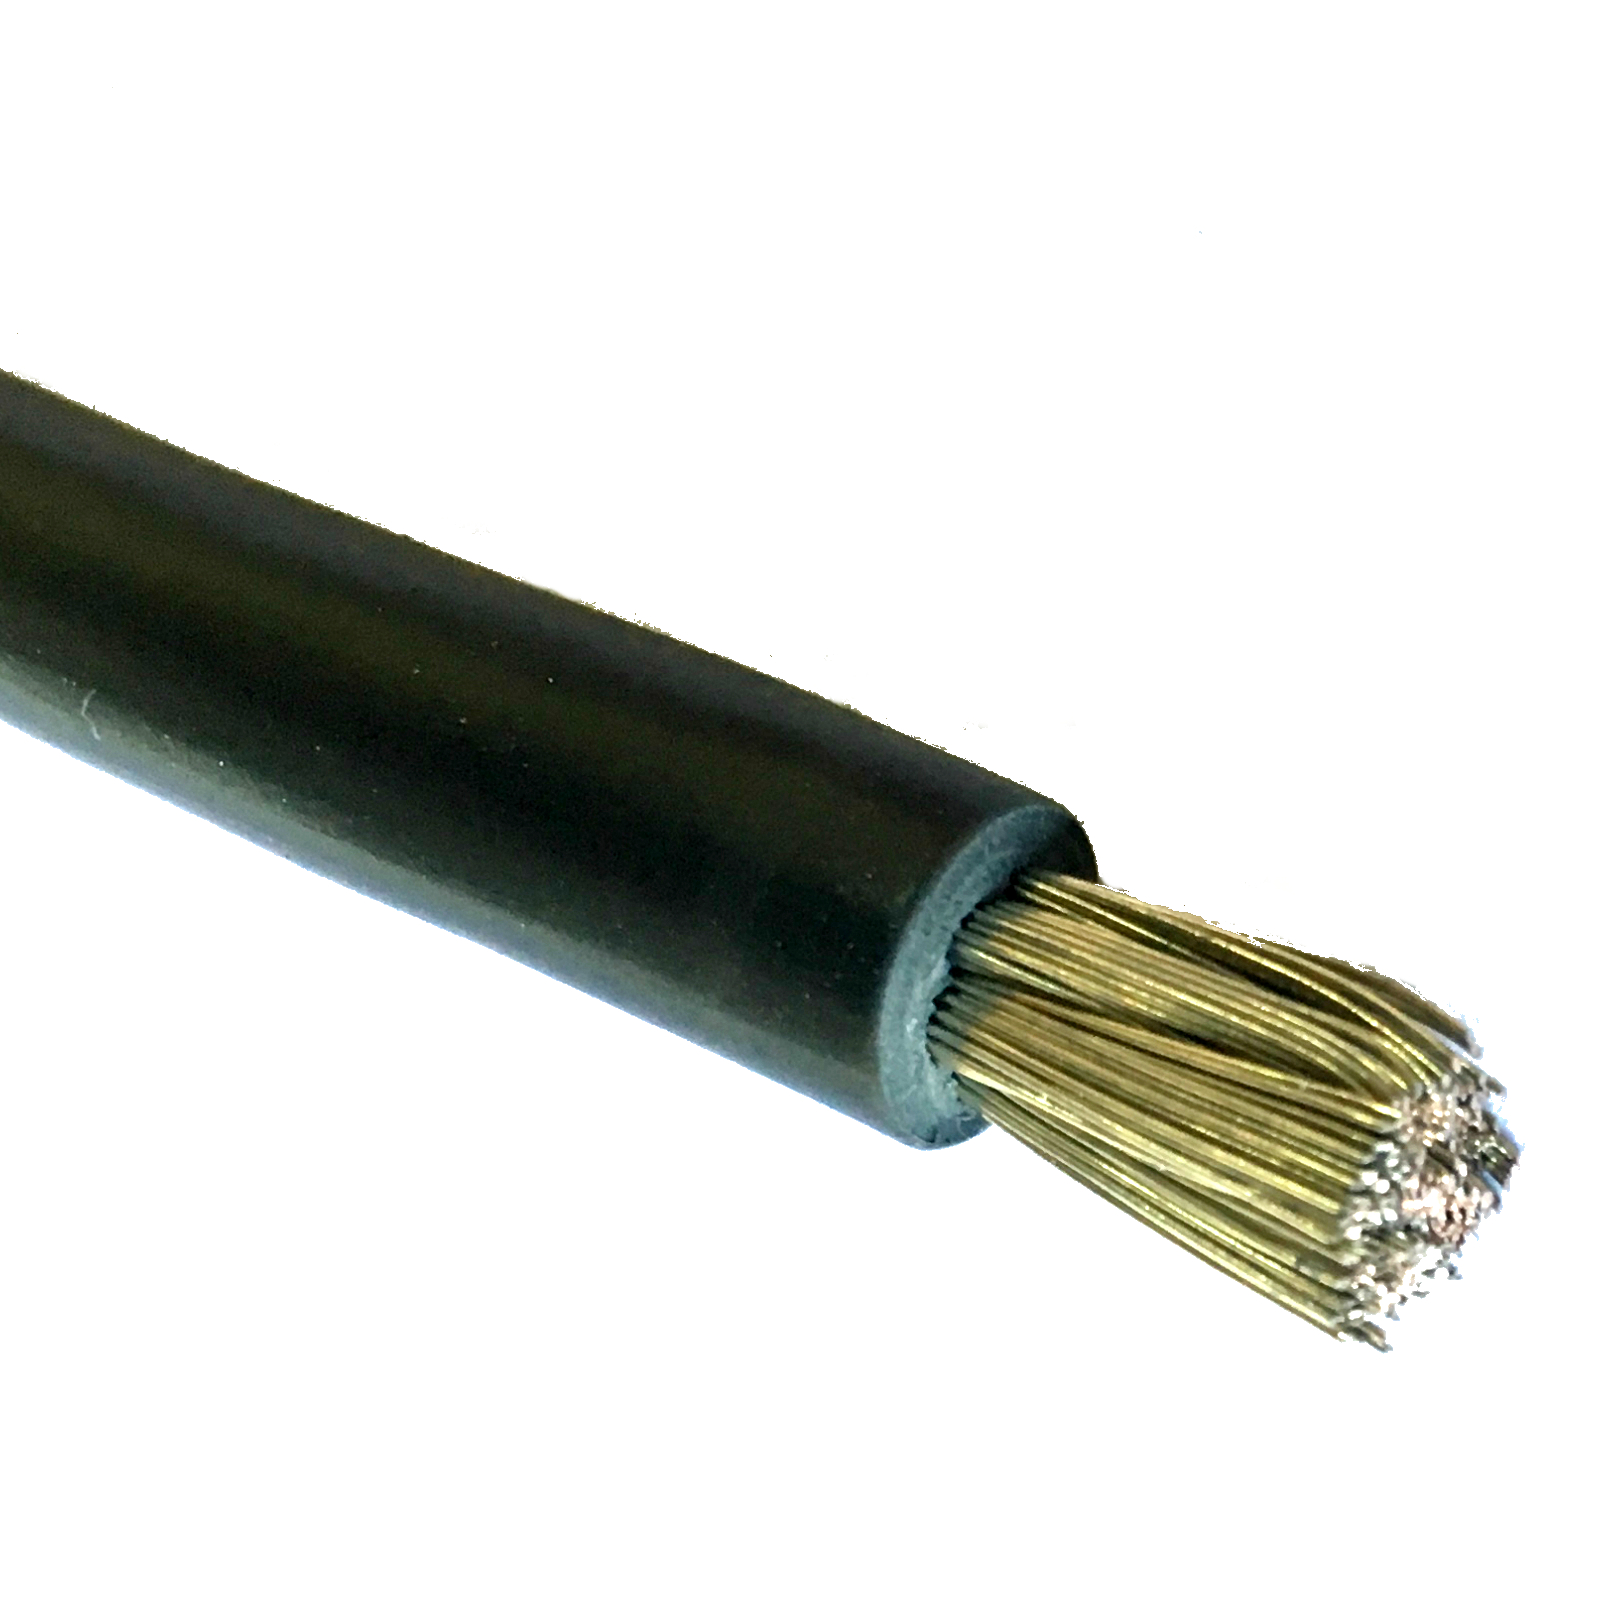 Black Insulated Copper Cable Battery Cable #6 Gauge 1000 USA